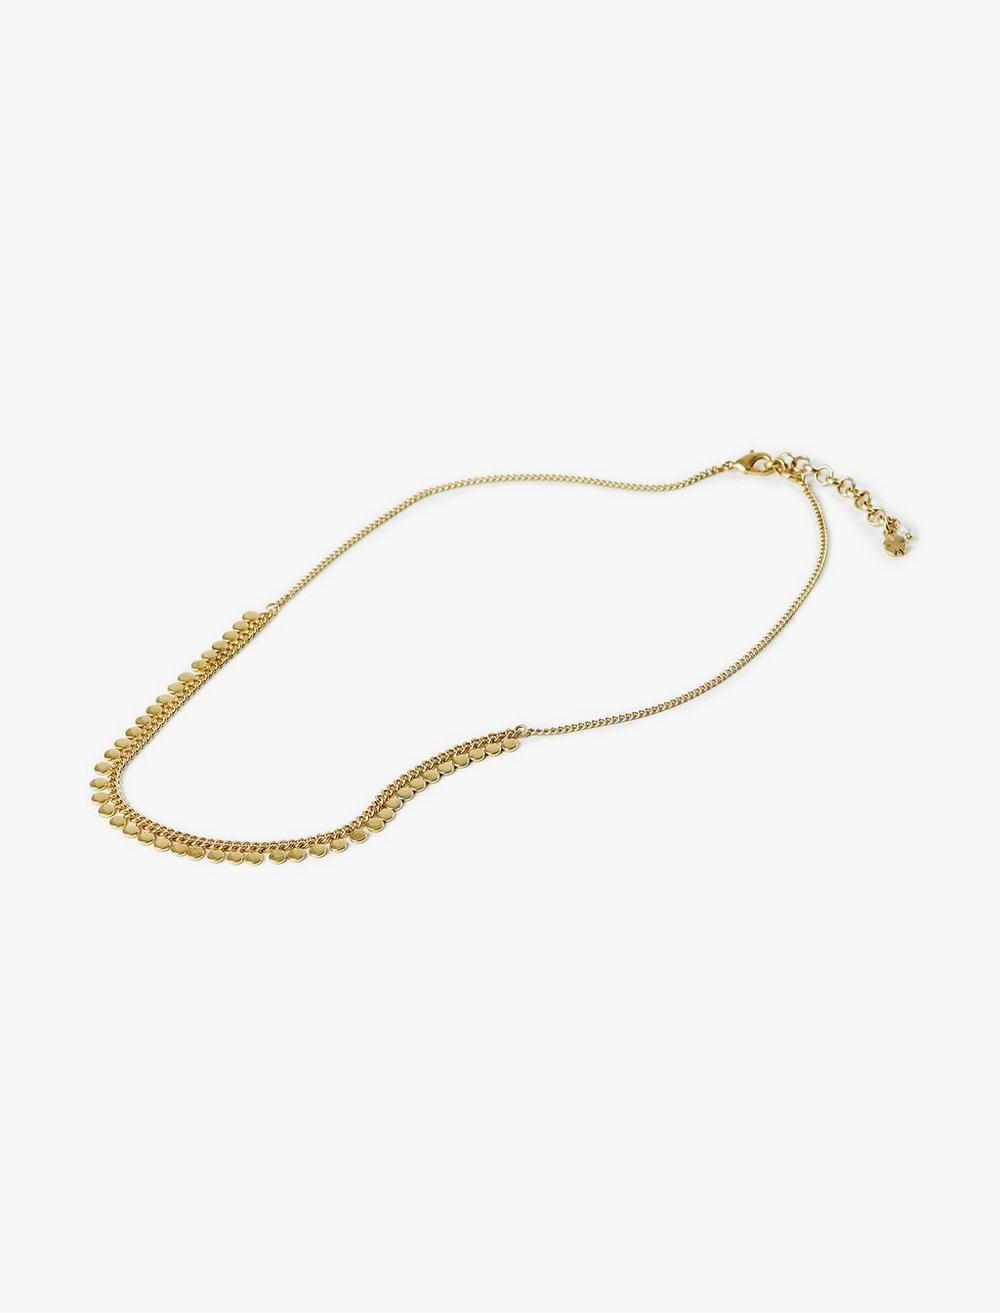 CHAIN NECKLACE, image 1